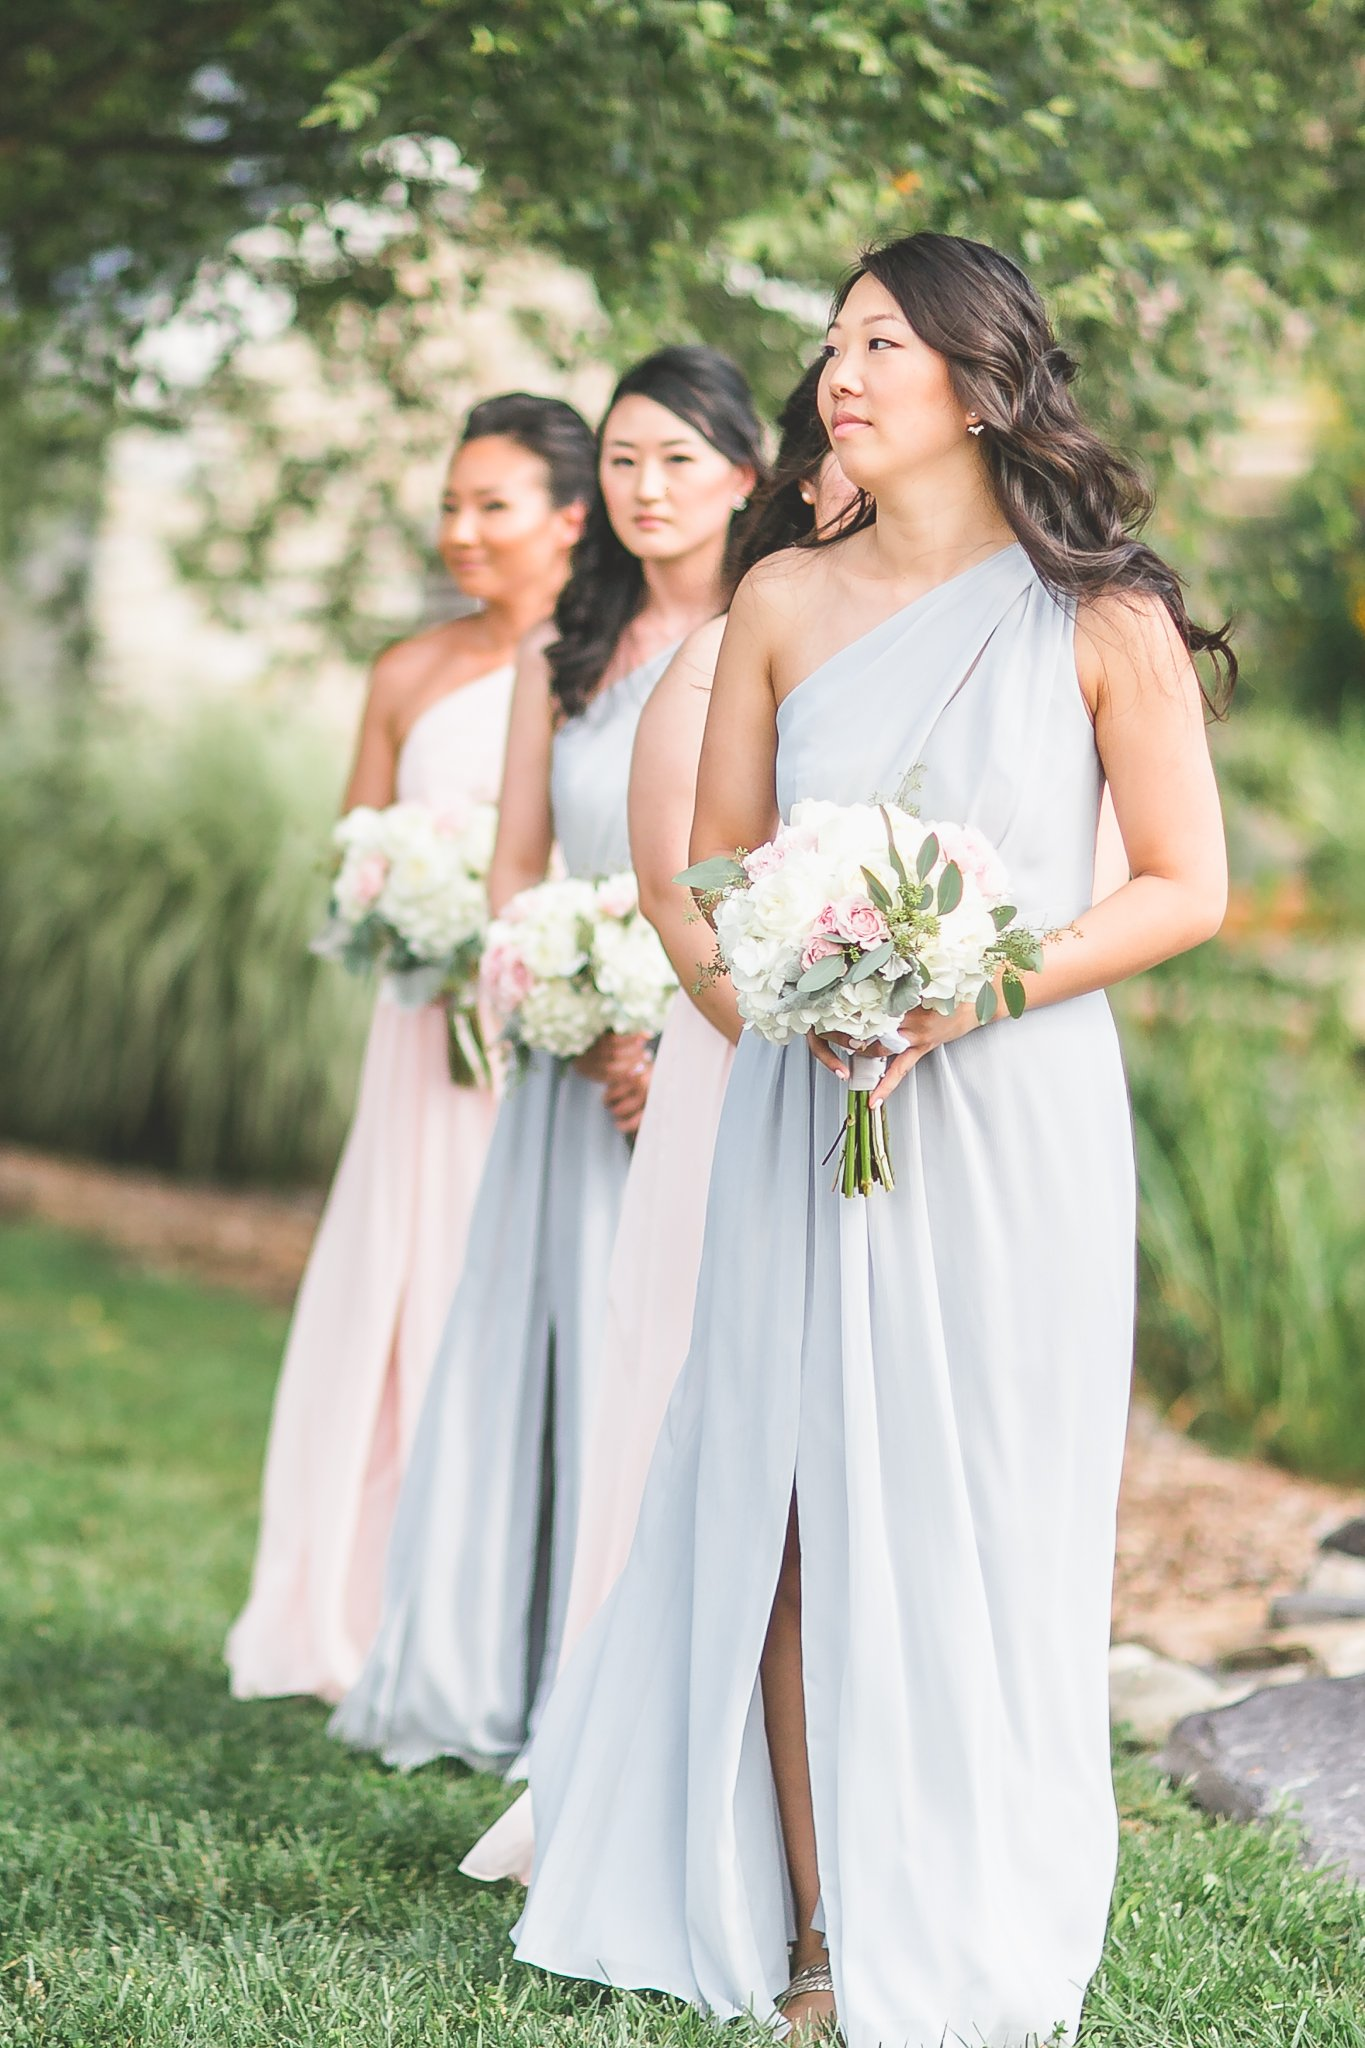 An Ice Cream Truck Made a Sweet Finale for this Scorching Summer Wedding on the Hottest Day of the Year images 8